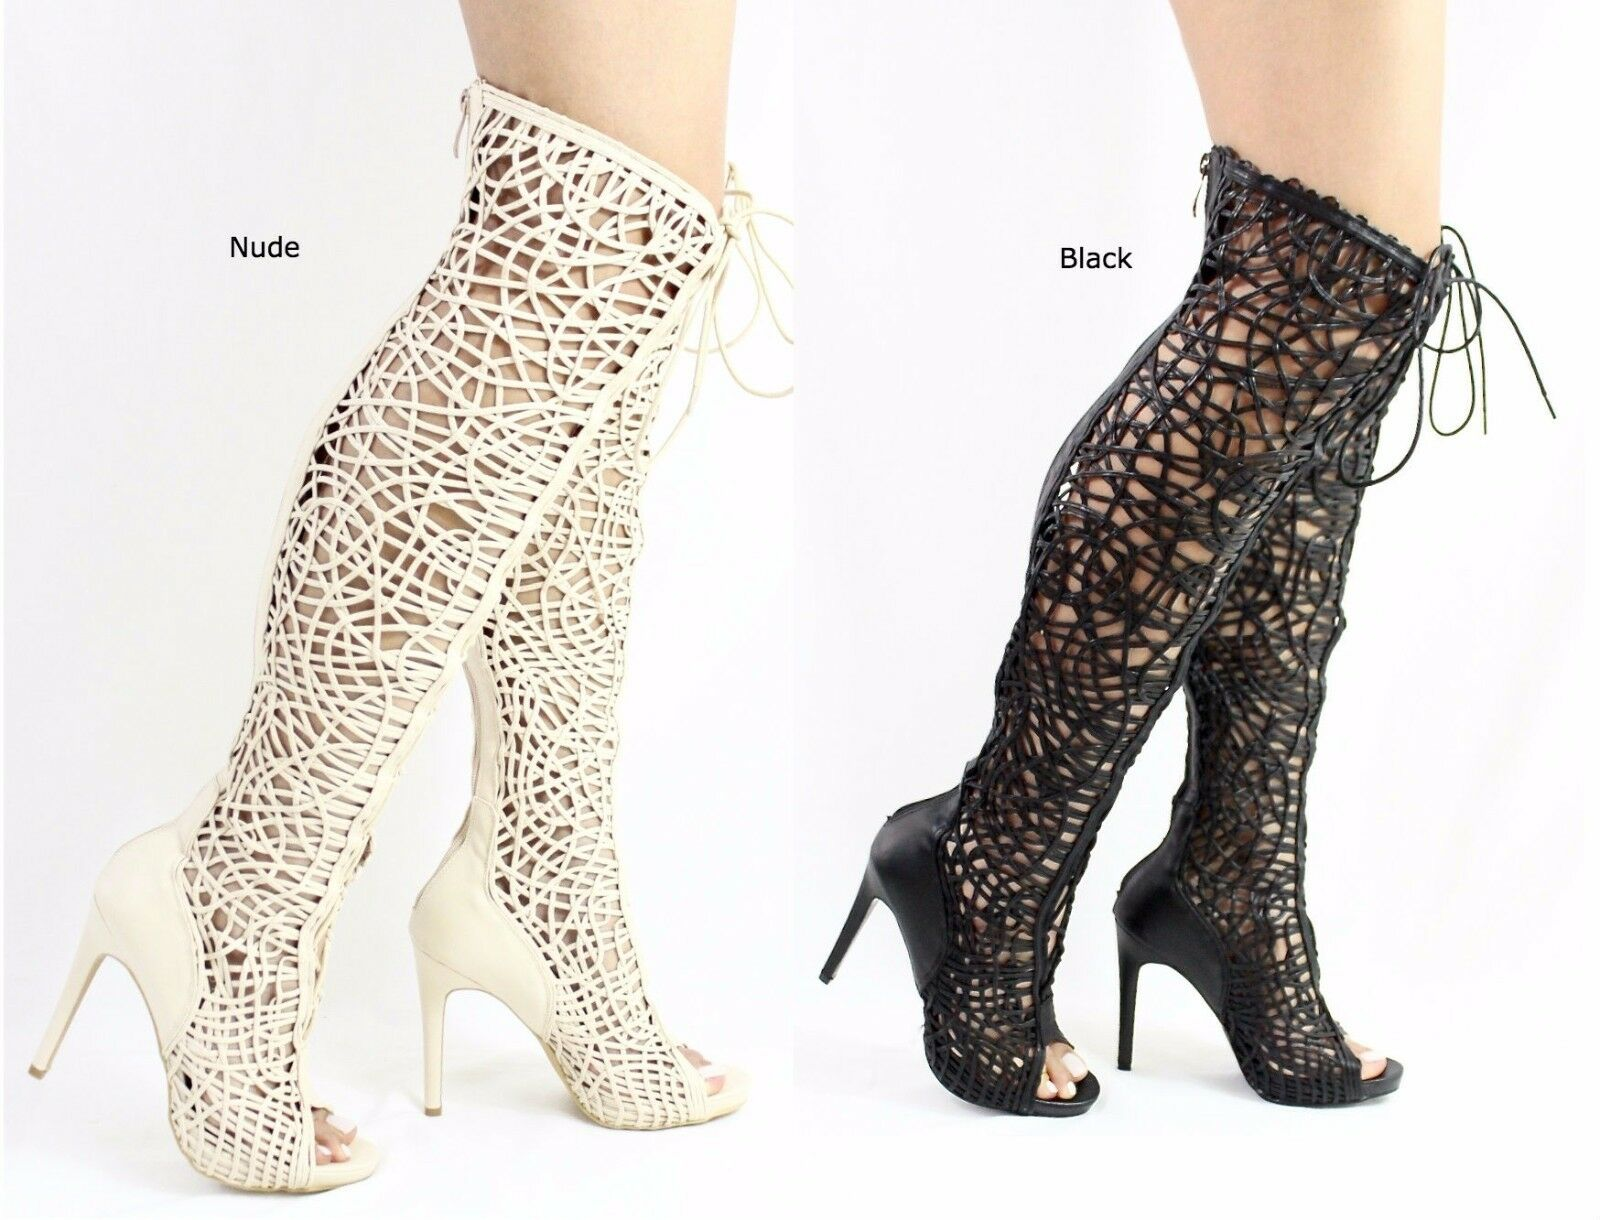 Olga-YH-2 Thigh High Strappy Gladiator Lace Up Open Stiefel Toe Heel knee High Stiefel Open f859ba